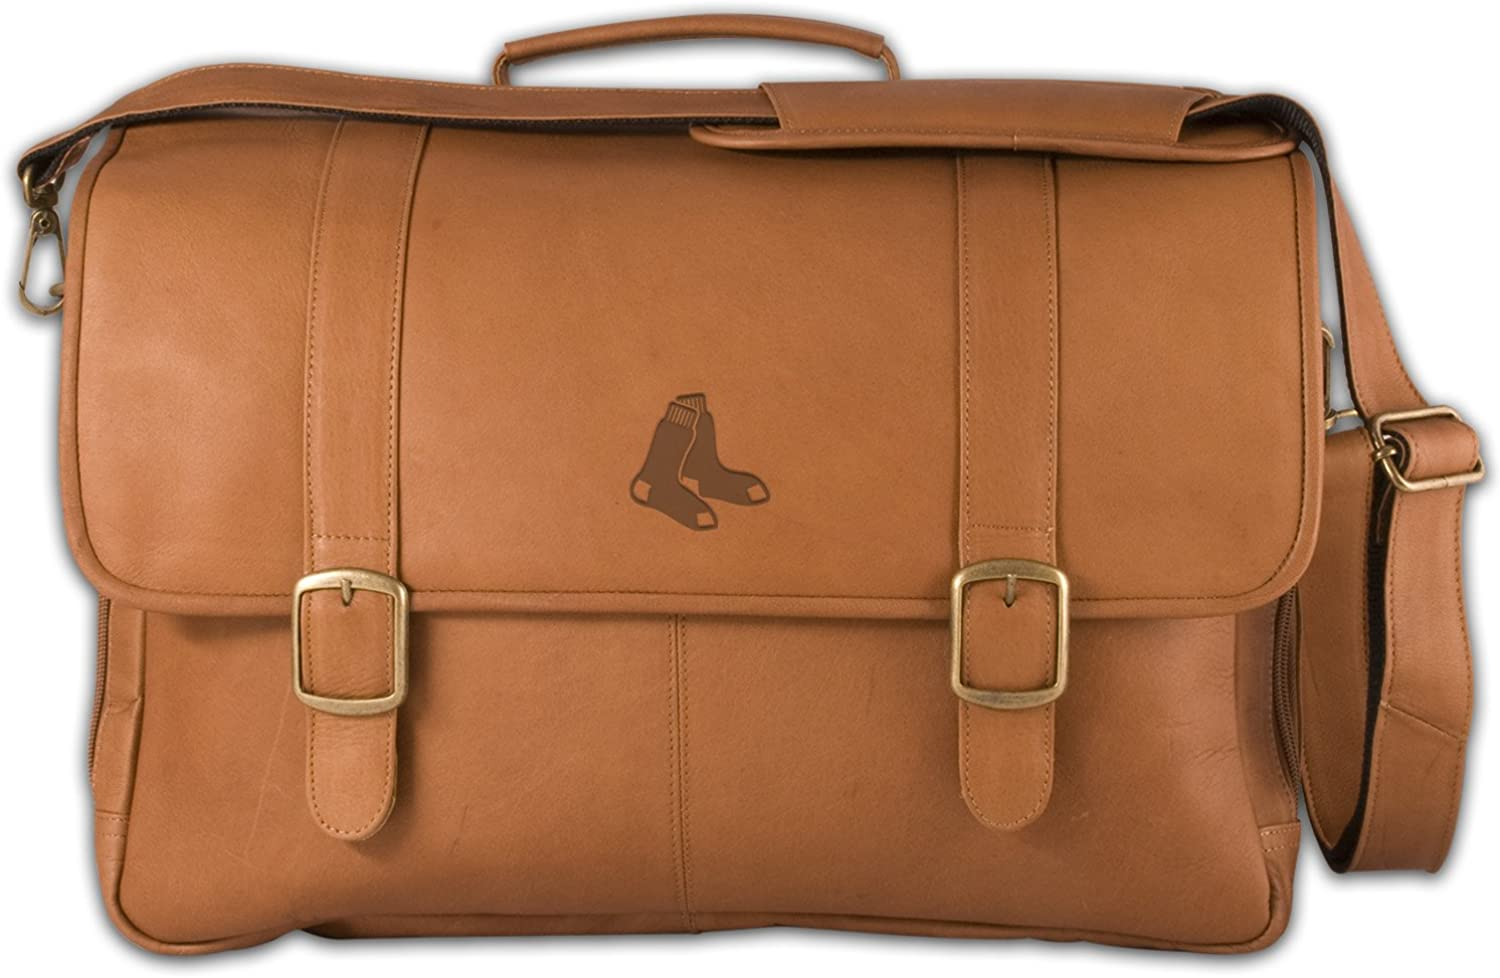 Pangea Brands MLB Leather Laptop Briefcase Rare Max 73% OFF Porthole